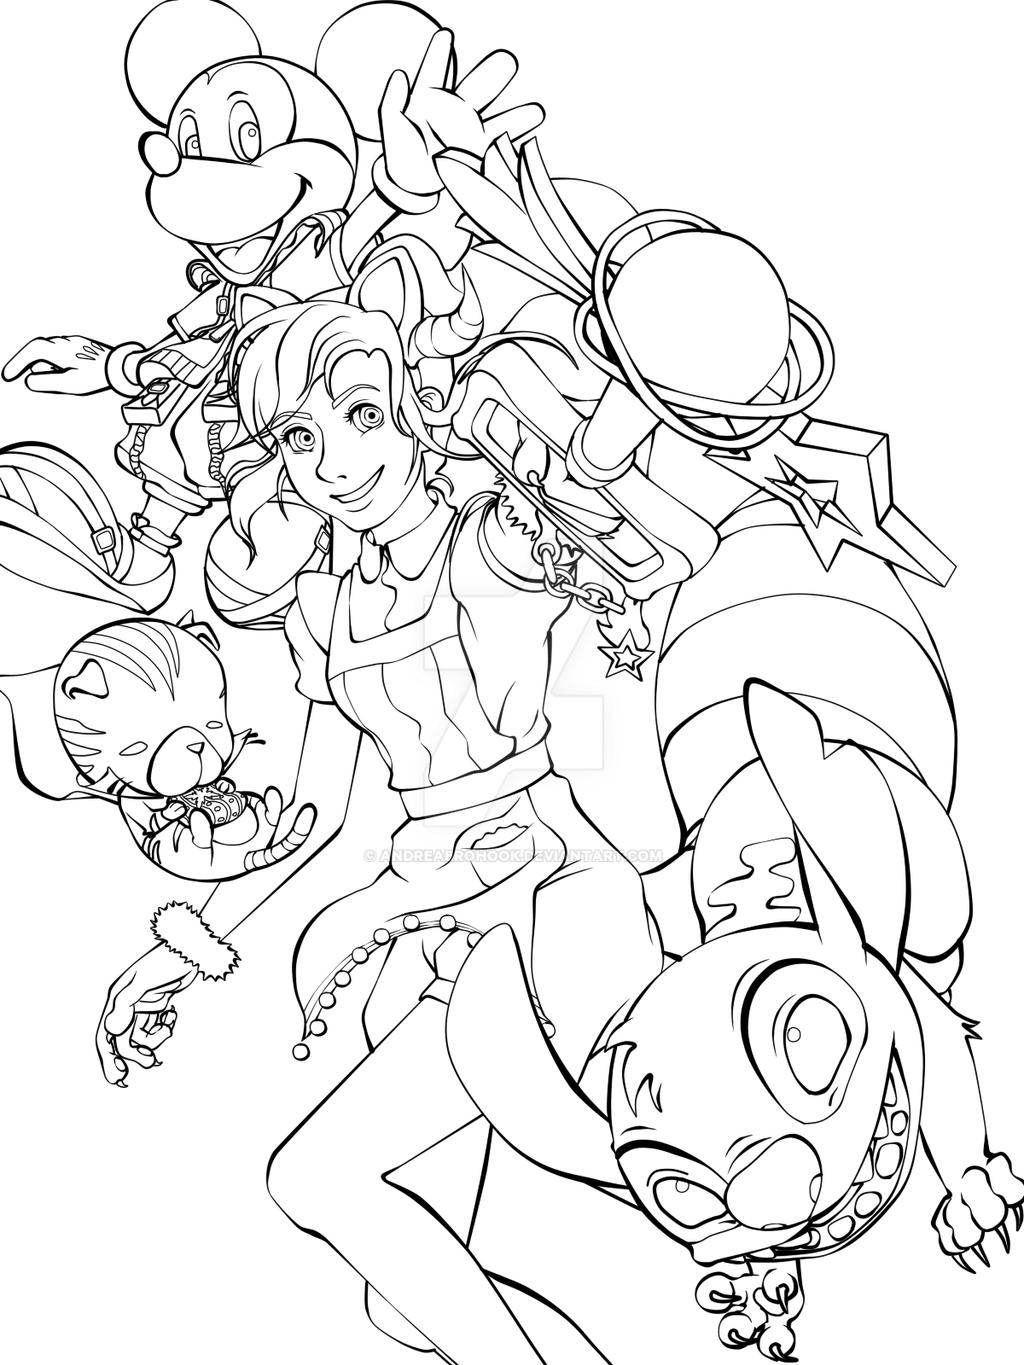 Kingdom Hearts Lineart : Kingdom hearts unchained lineart by andreabrohook on